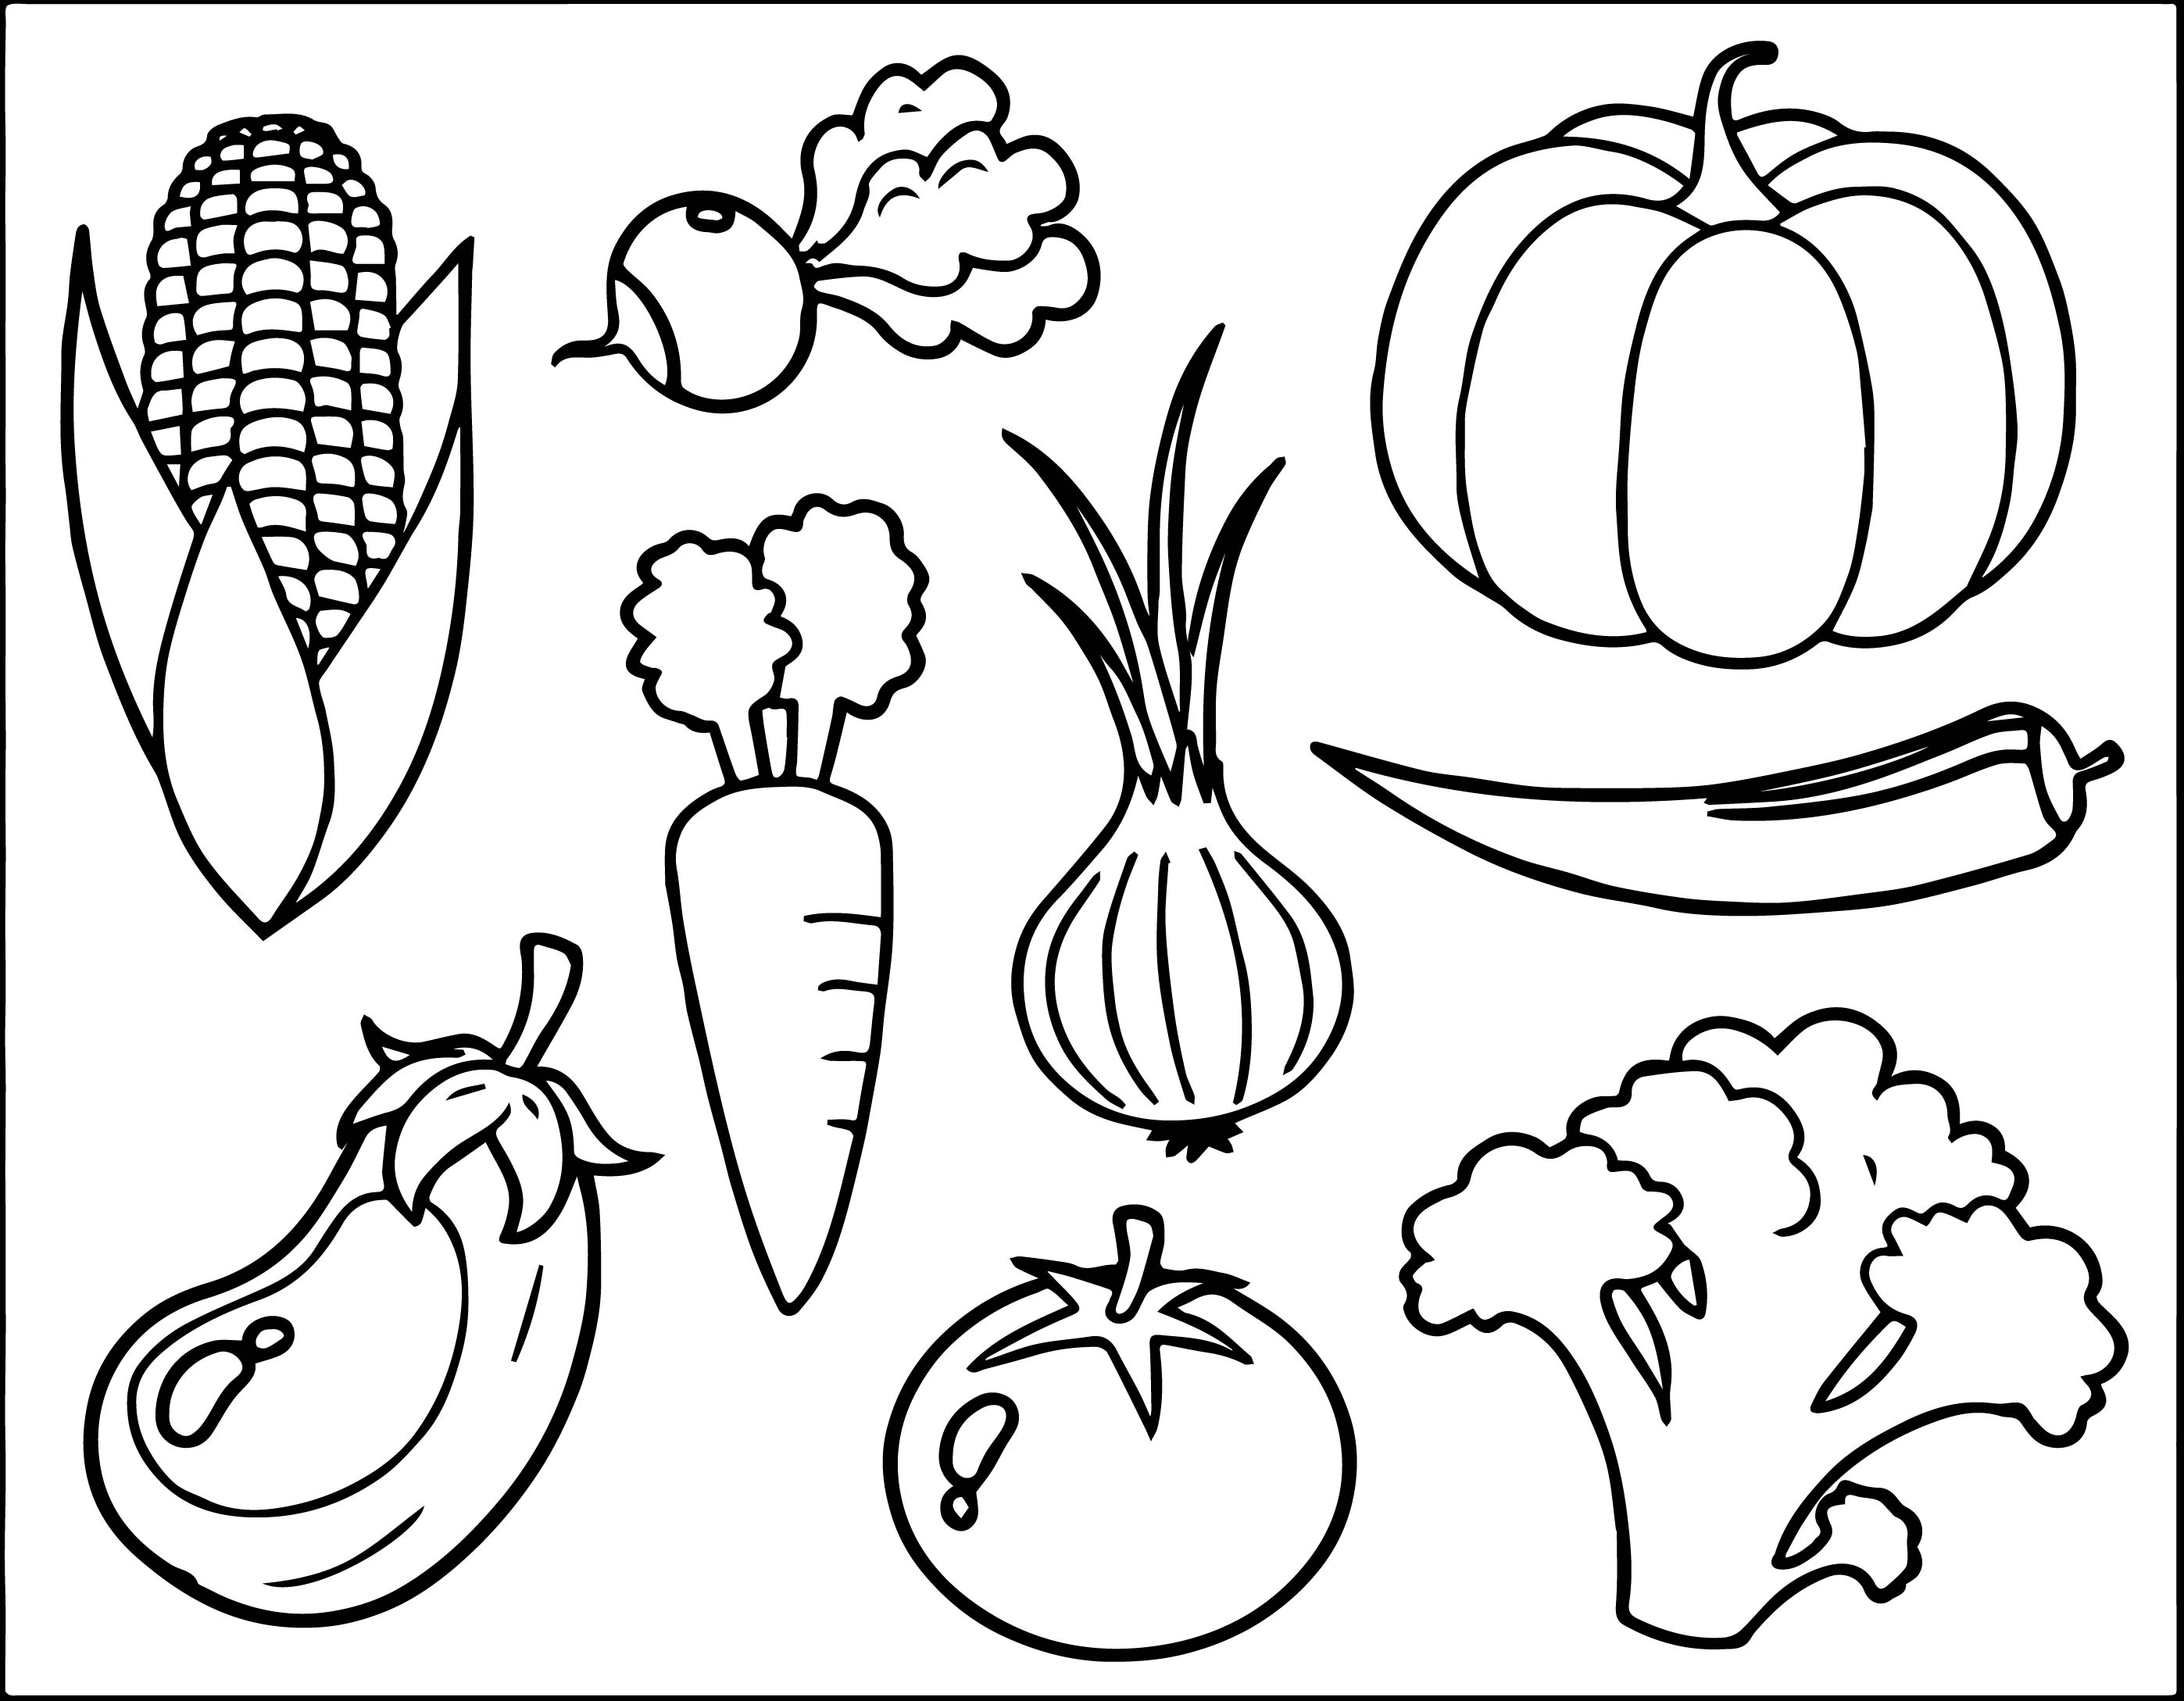 2795x2177 Vegetable Coloring Page Wecoloringpage Regarding Fruit Salad